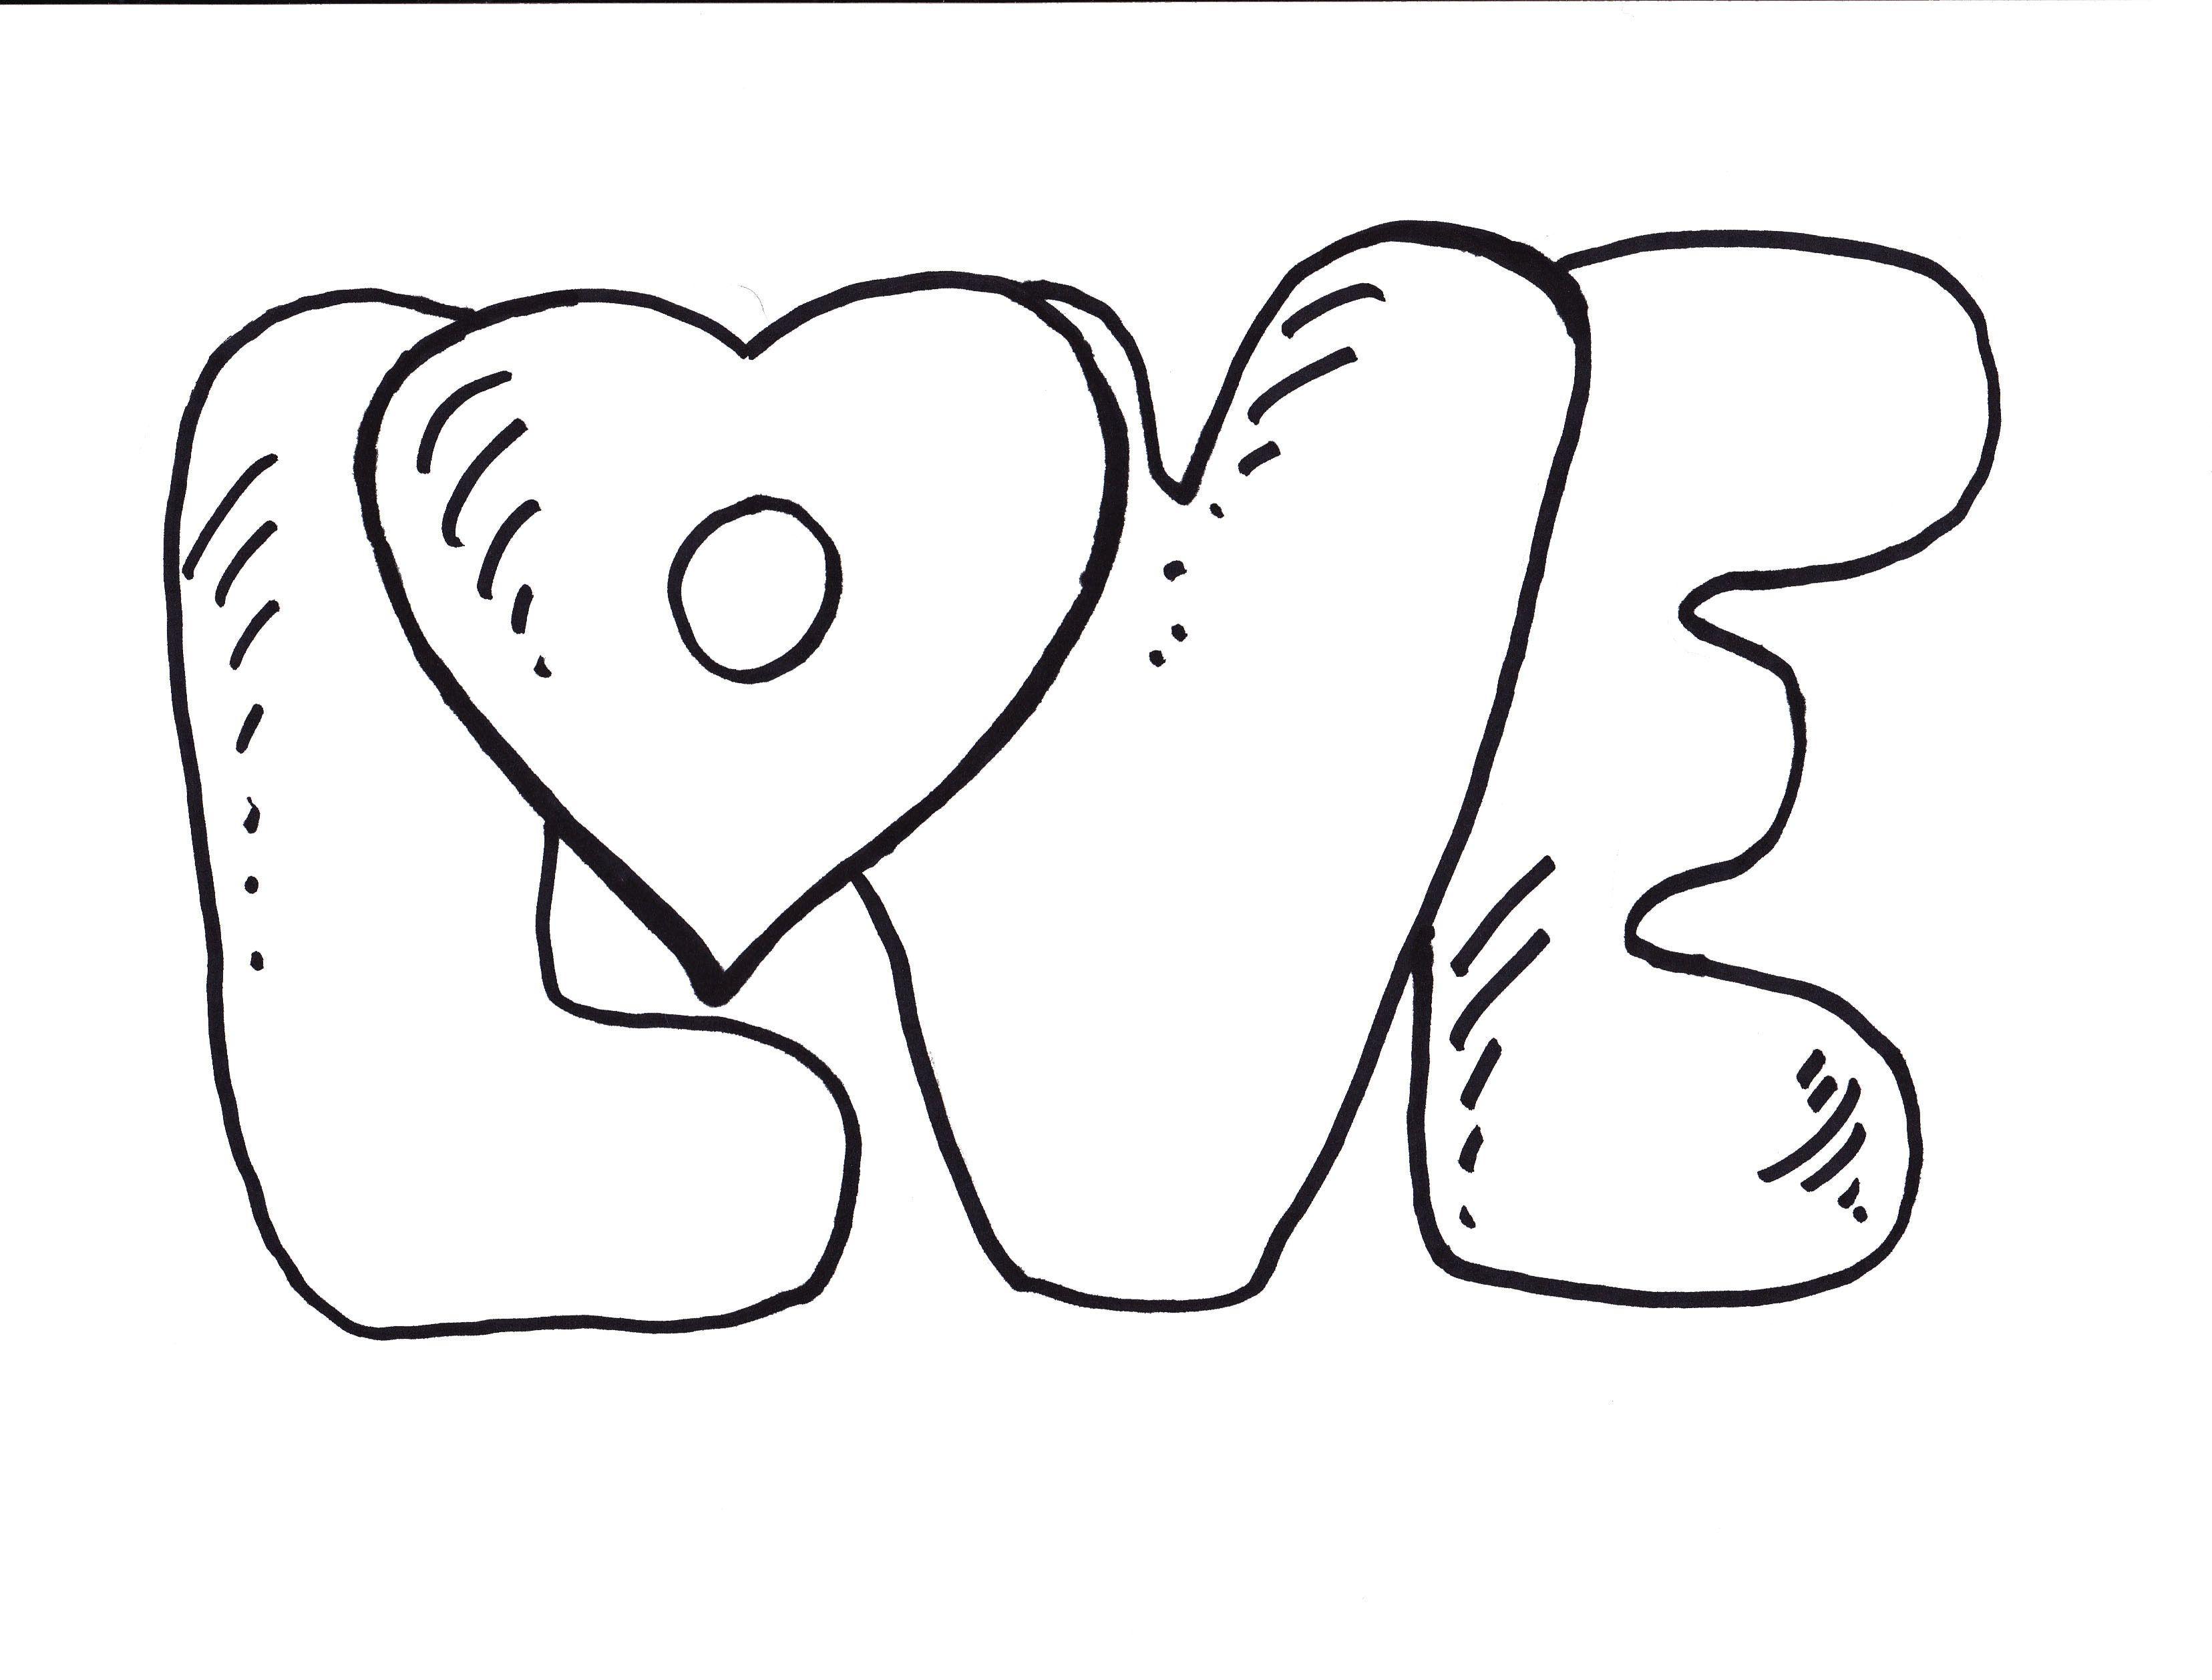 Easy Printable Valentine Dot Marker Art Coloring Pages Heart Coloring Pages Cute Coloring Pages Love Coloring Pages